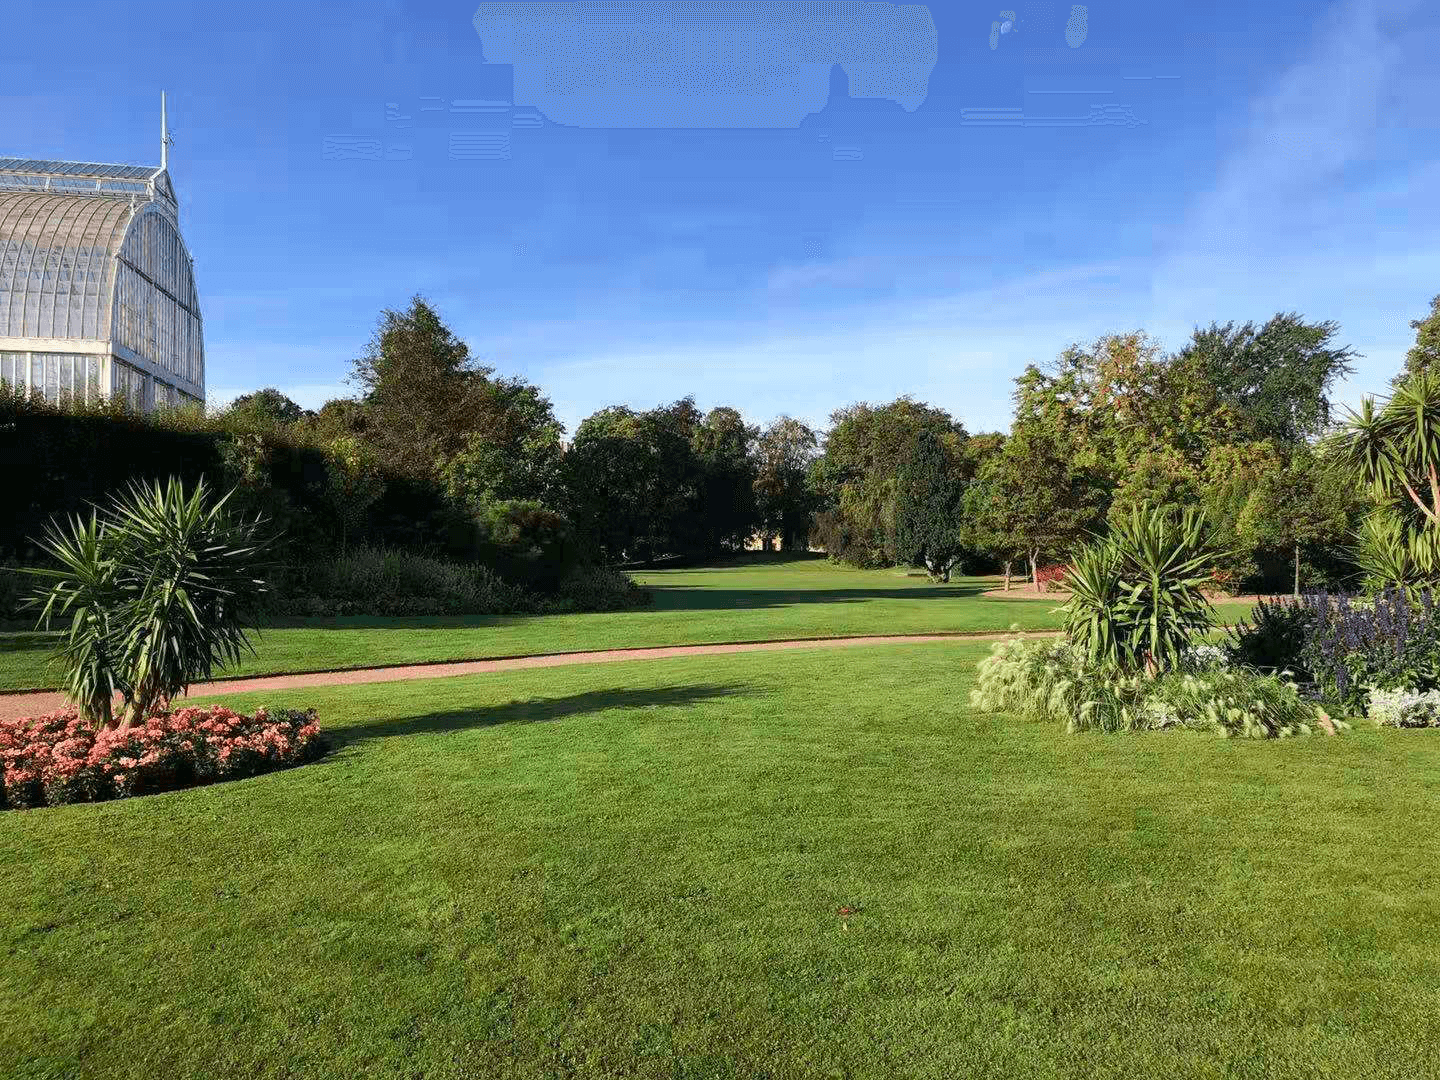 the public park where IoT wireless sensors are deployed to collect environmental data